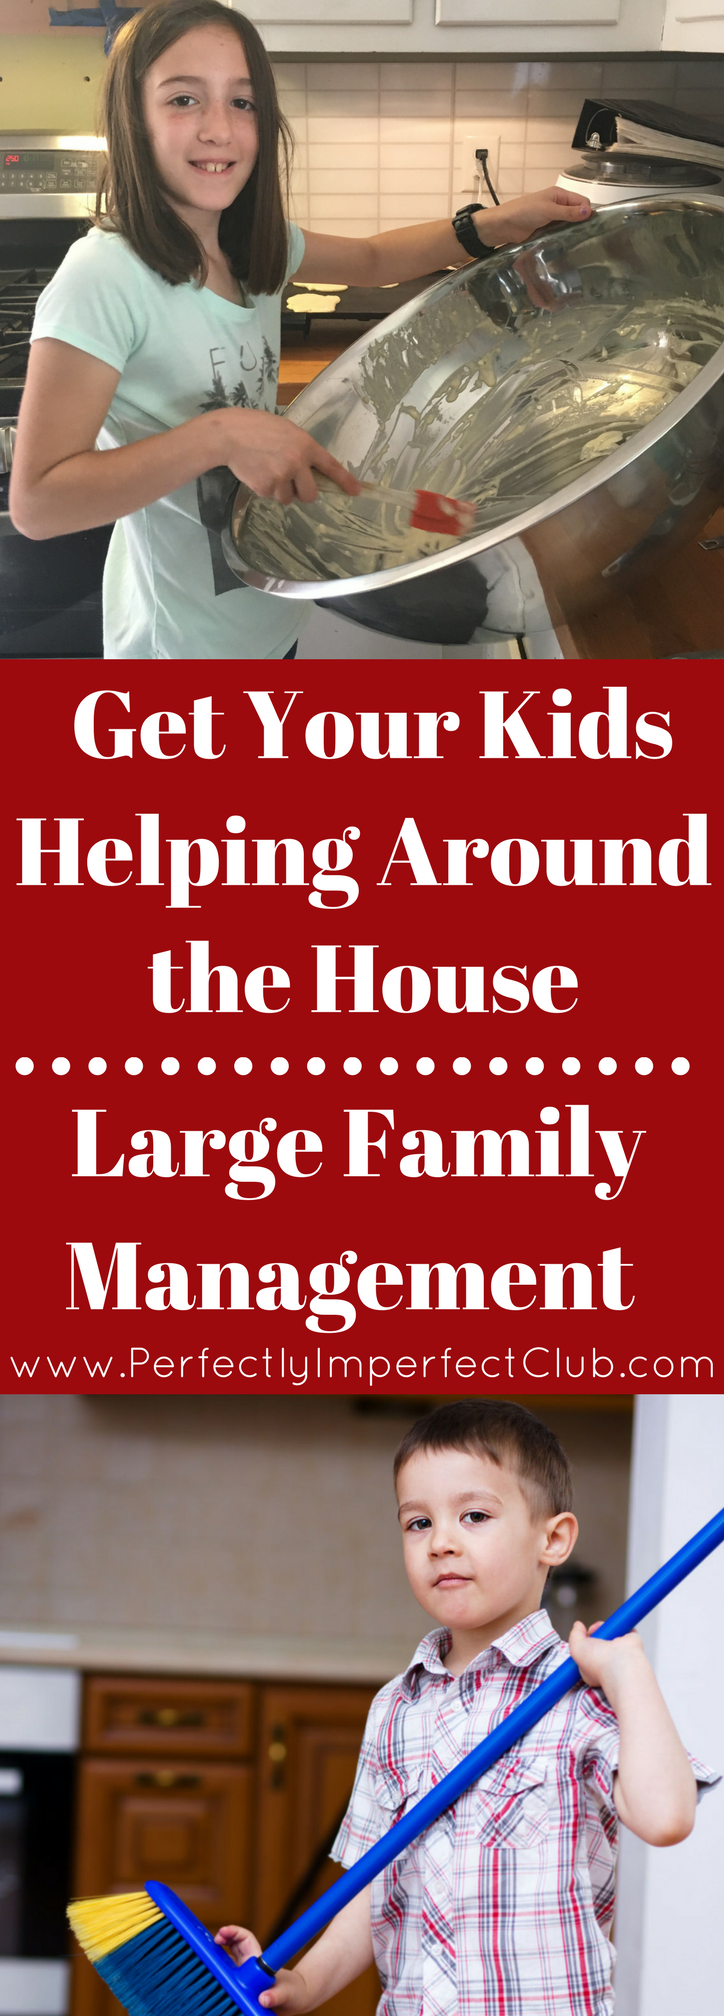 Children's Chores By Age| Chores for Kids| Chores for Teens| Large Family Chores| Large Family Organization